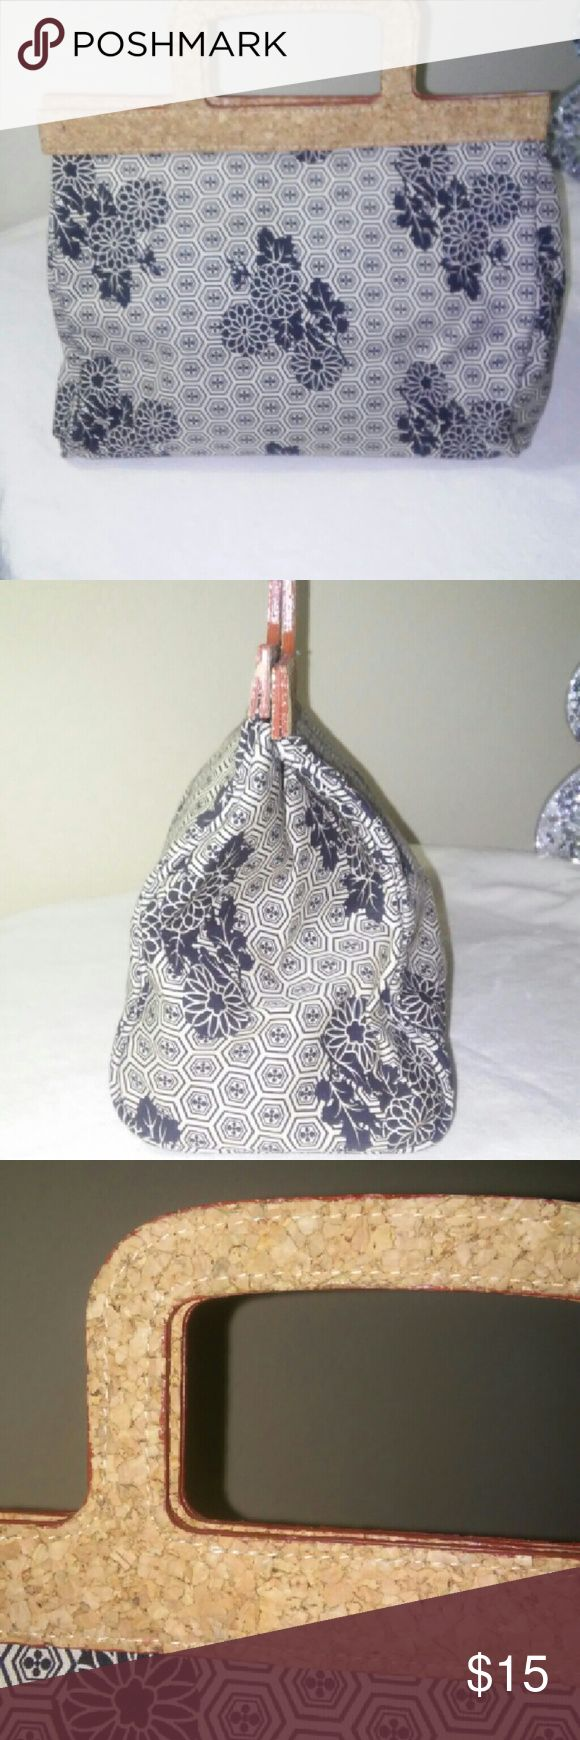 """Old Navy Purse with Cork Trim Black and beige flower print with cork trim/handle. Magnetic clasp. Approx. 5""""x7""""x10"""" Old Navy Bags Mini Bags"""